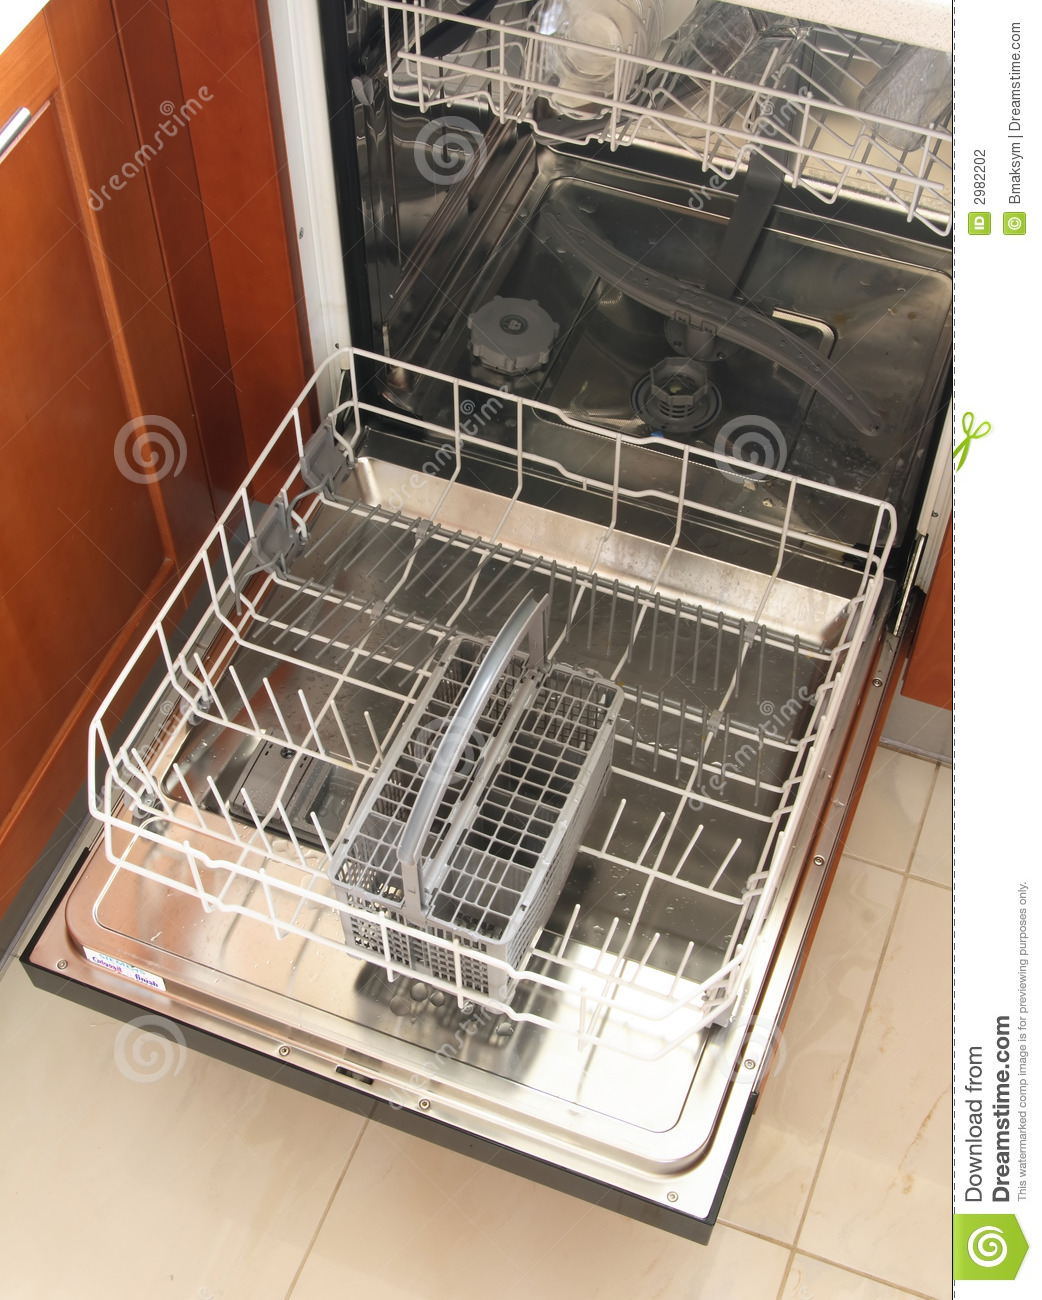 Download Front View Of Empty Dishwasher Stock Photo